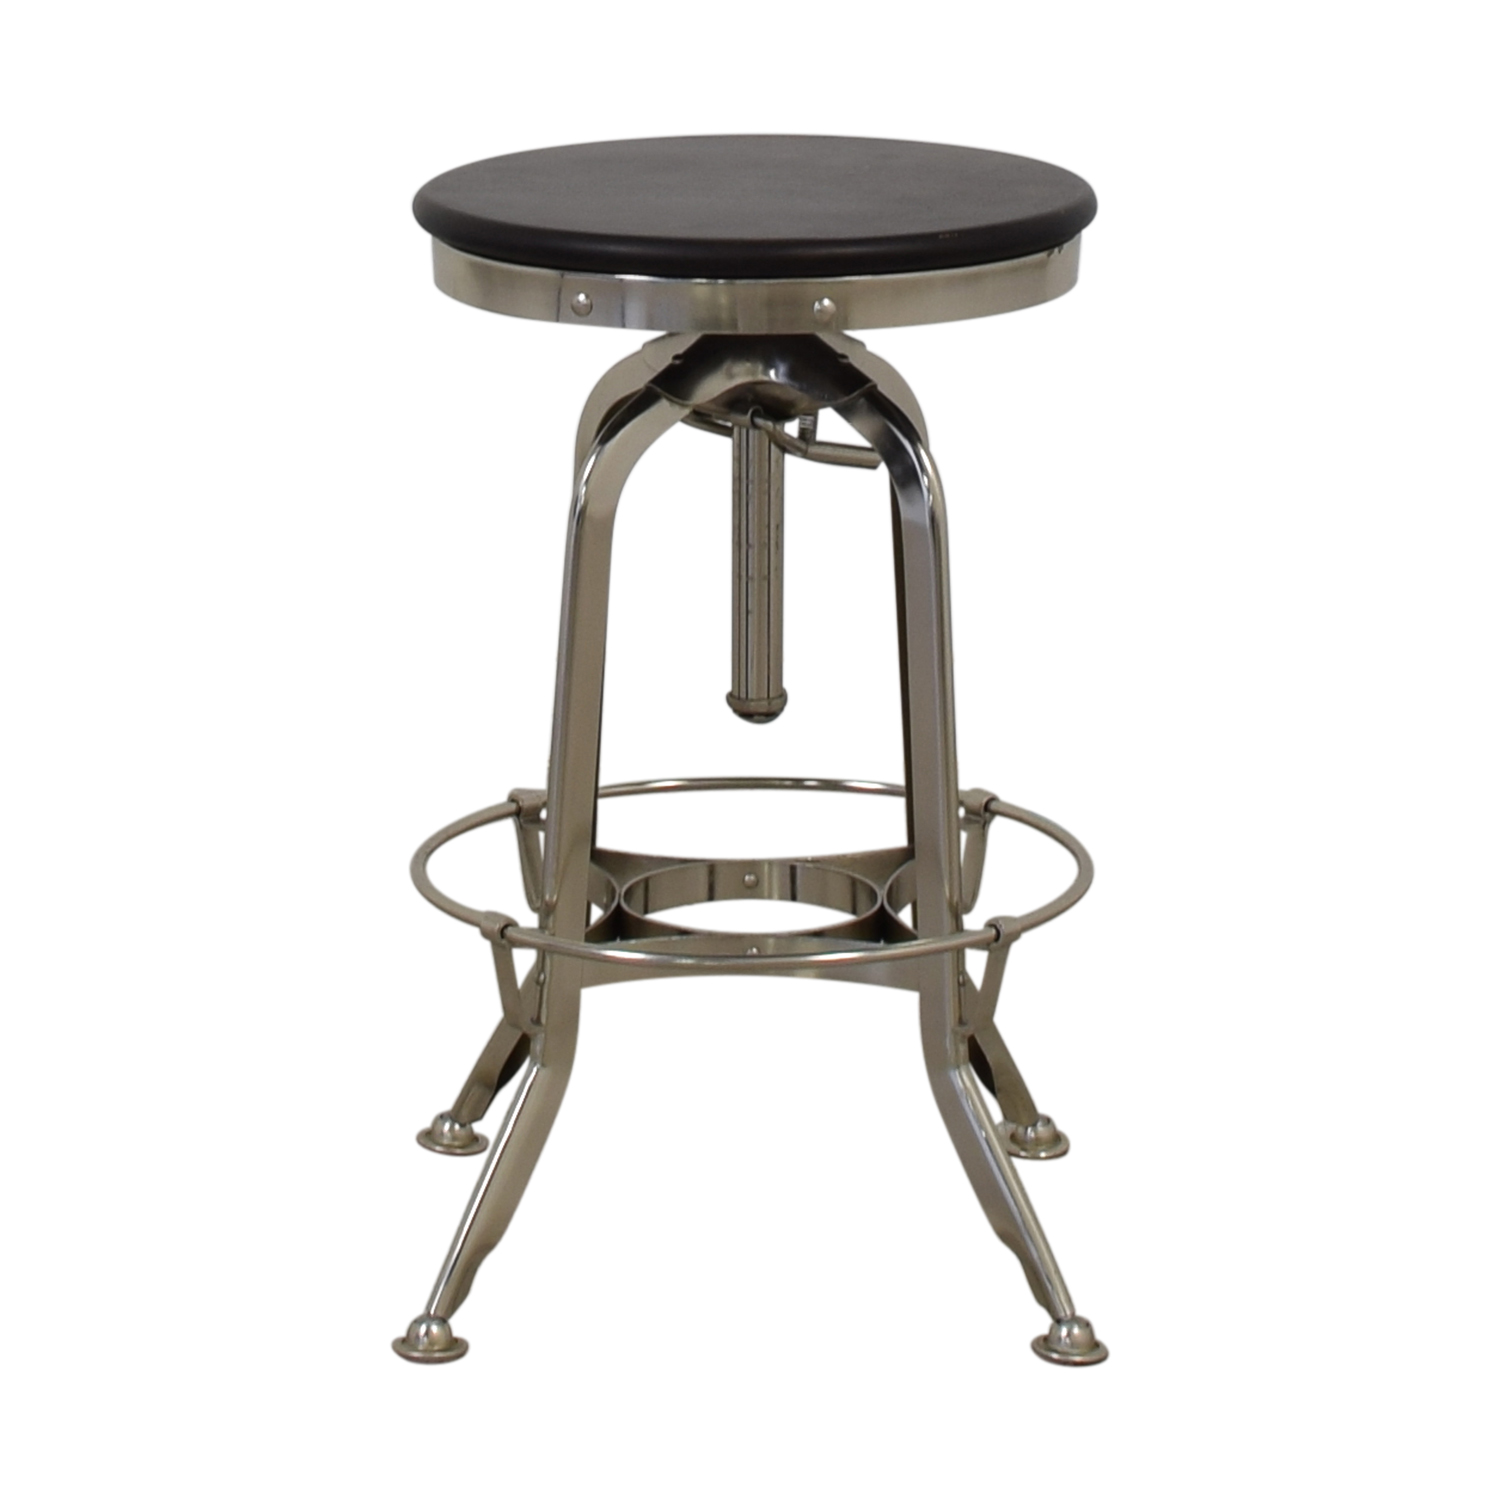 Restoration Hardware Restoration Hardware 1940s Vintage Toledo Bar Stool on sale